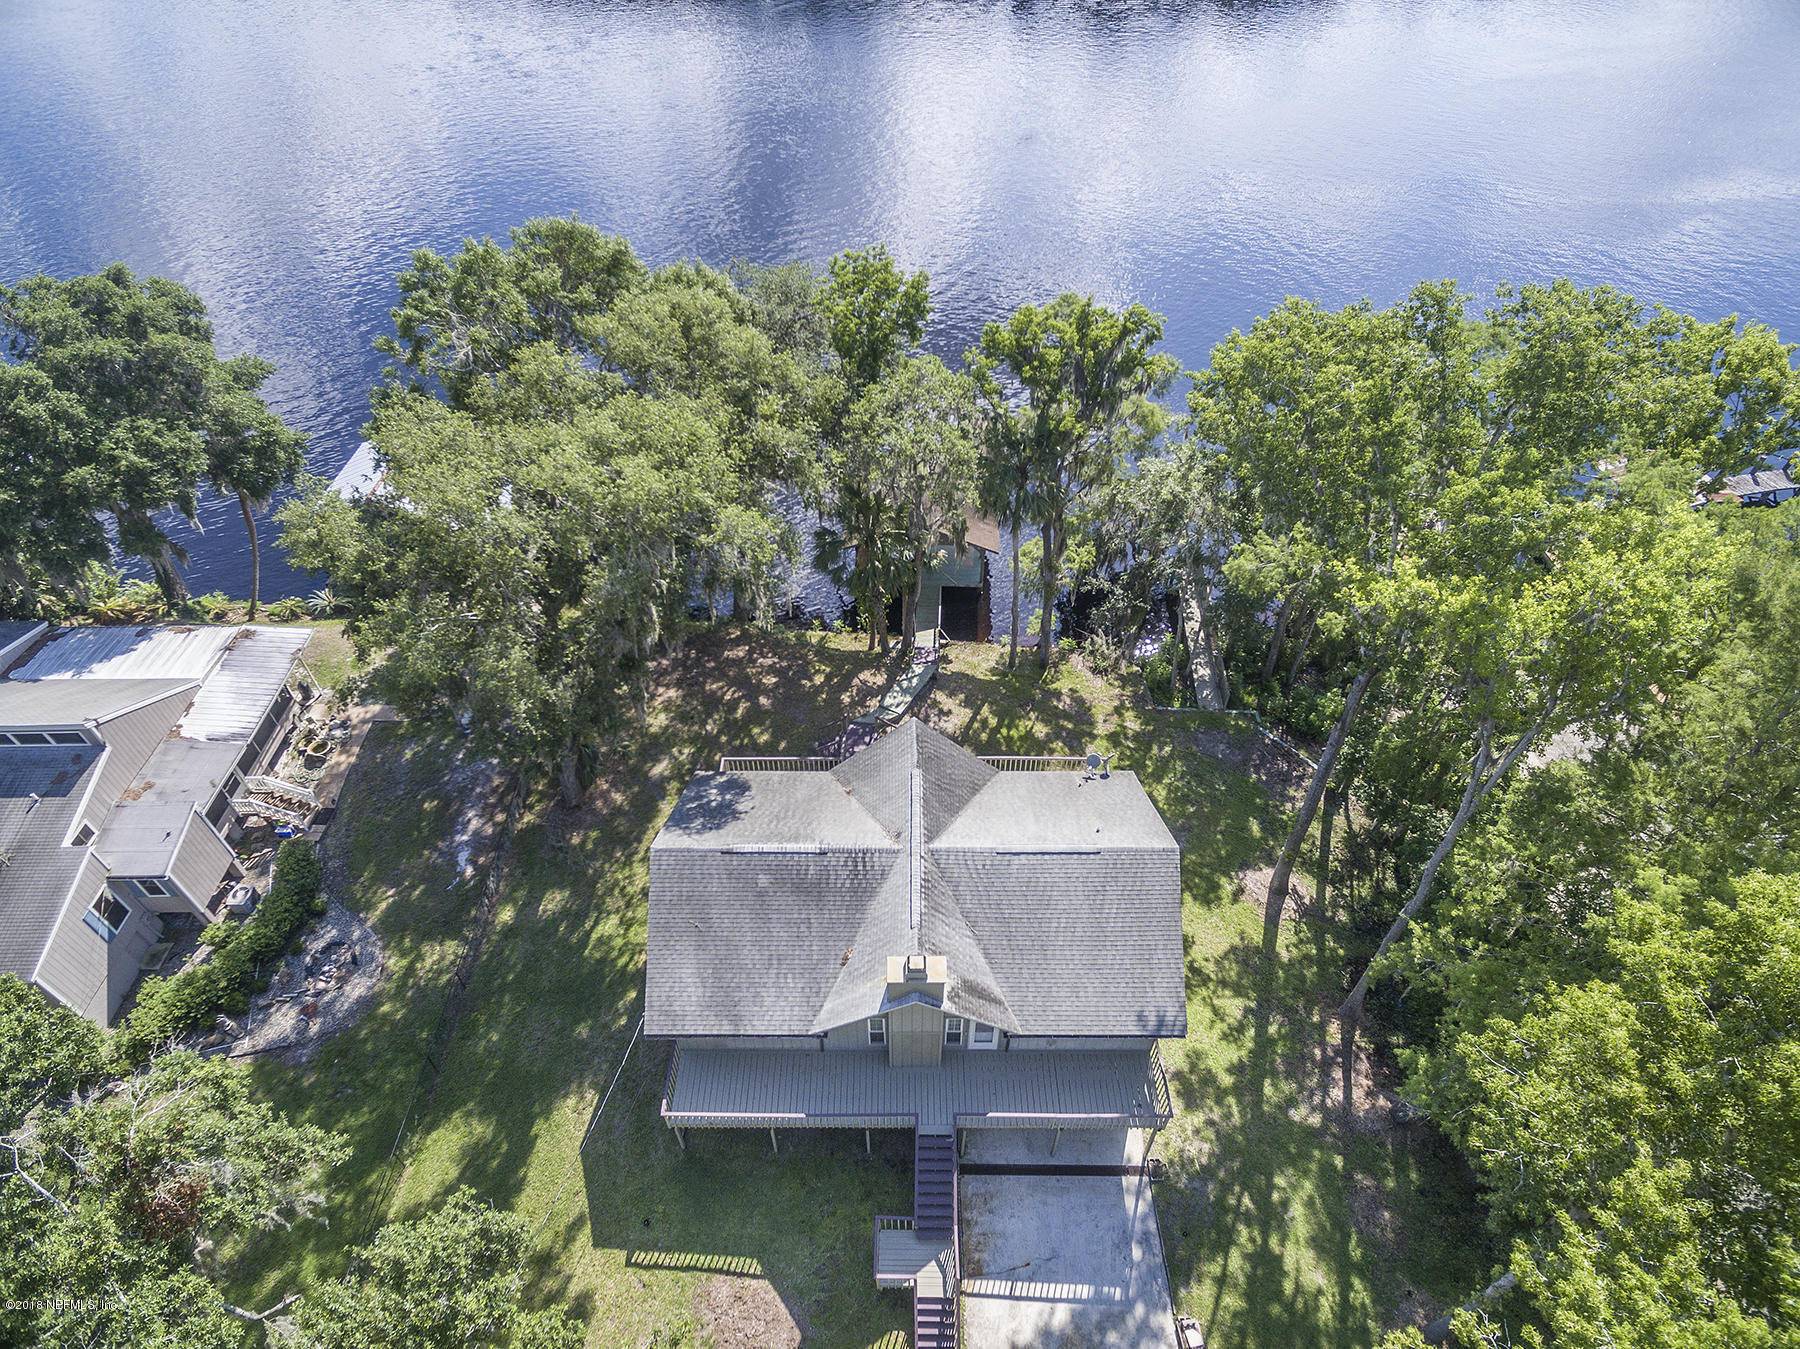 141 SHELL HARBOUR, SATSUMA, FLORIDA 32189, 3 Bedrooms Bedrooms, ,2 BathroomsBathrooms,Residential - single family,For sale,SHELL HARBOUR,940913